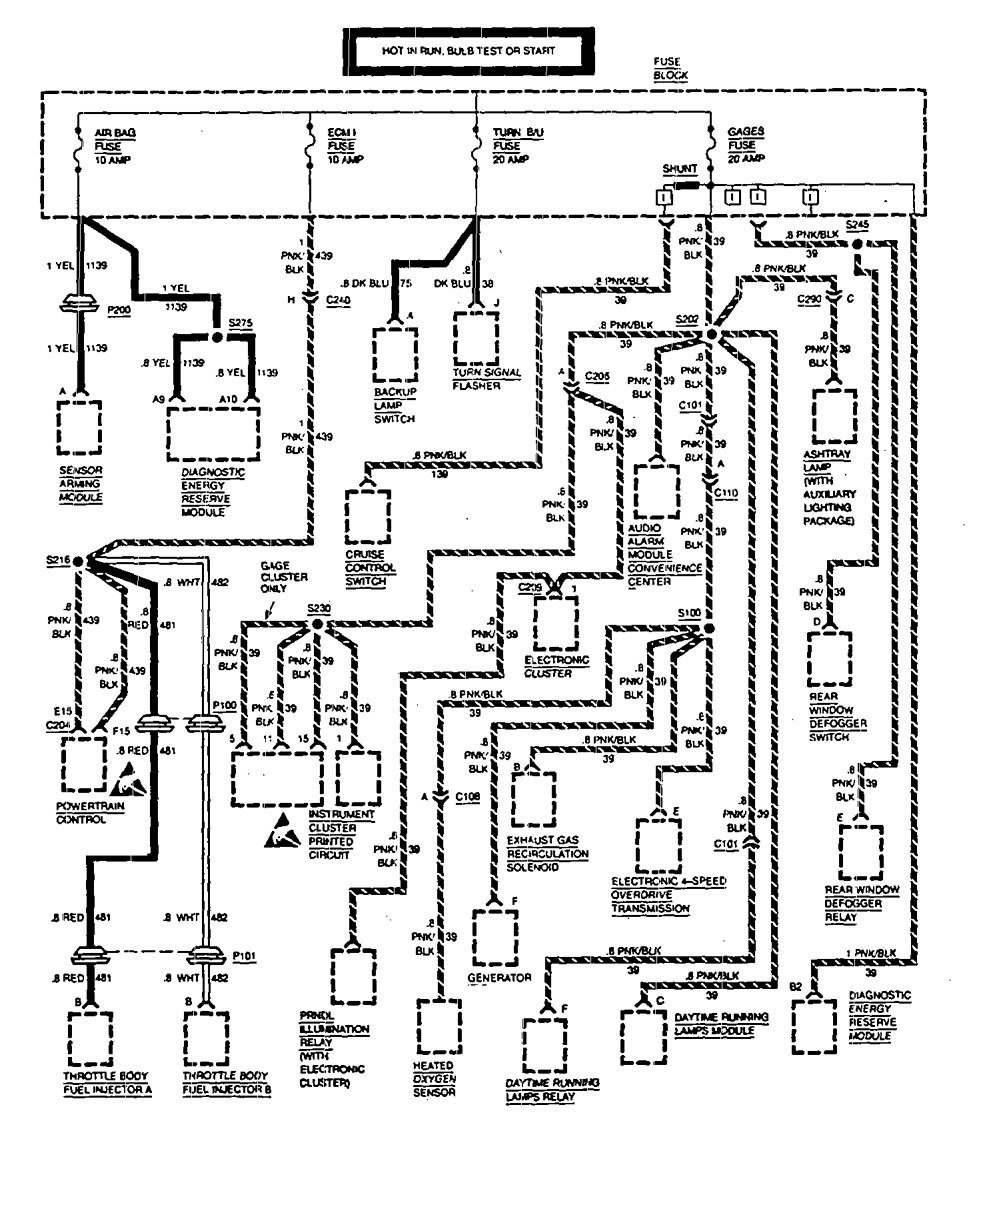 94 chevy astro wiring diagram wiring diagram for light switch u2022 rh prestonfarmmotors co 1994 chevy astro van radio wiring diagram 1994 chevy astro van wiring diagram